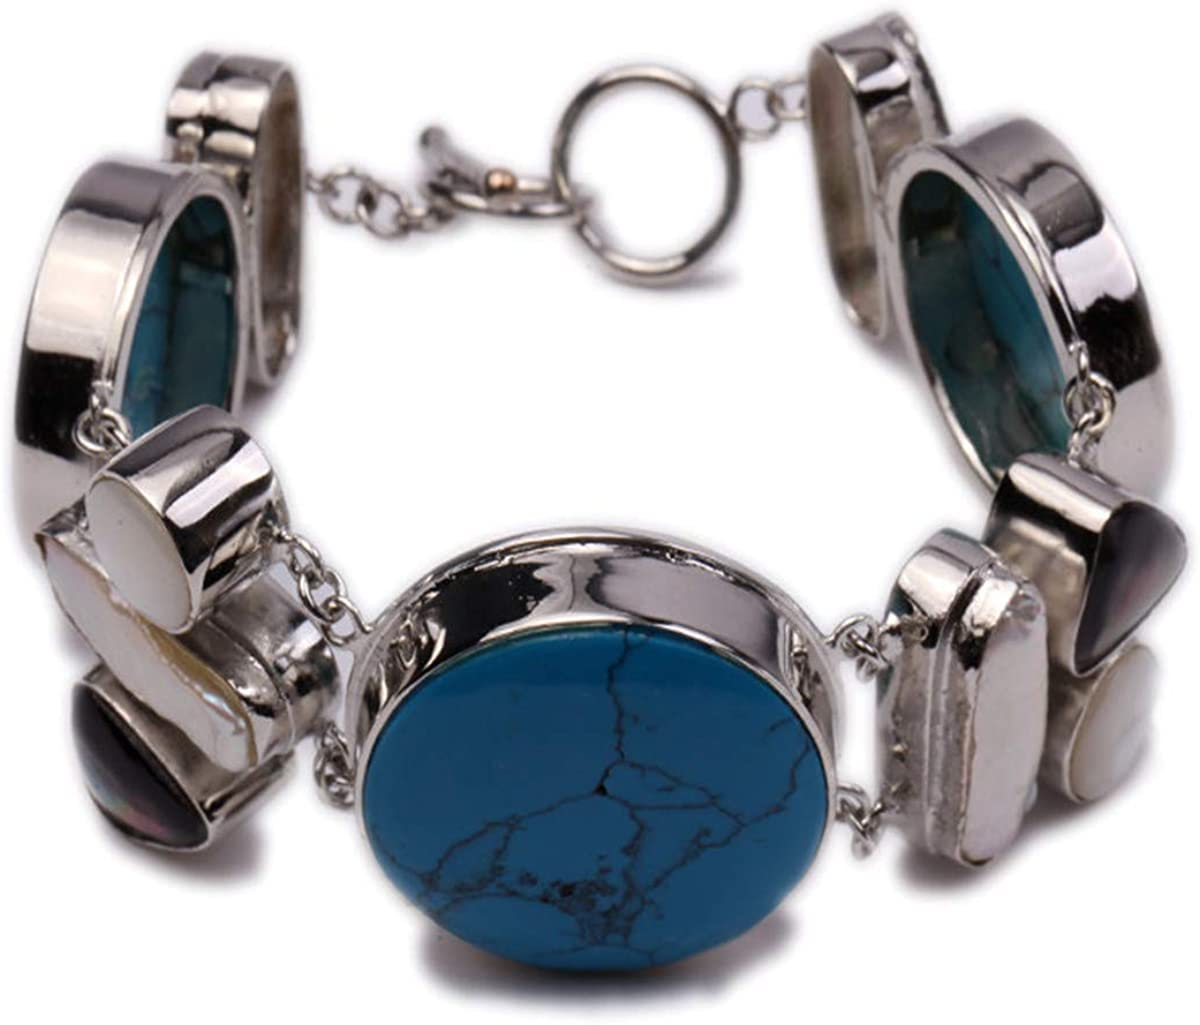 JYX Ethnic Bohemia Bangle 25-30mm Blue Turquoise and Shell Pearl inlaid Bracelet Cuff Chain Jewelry 8.5